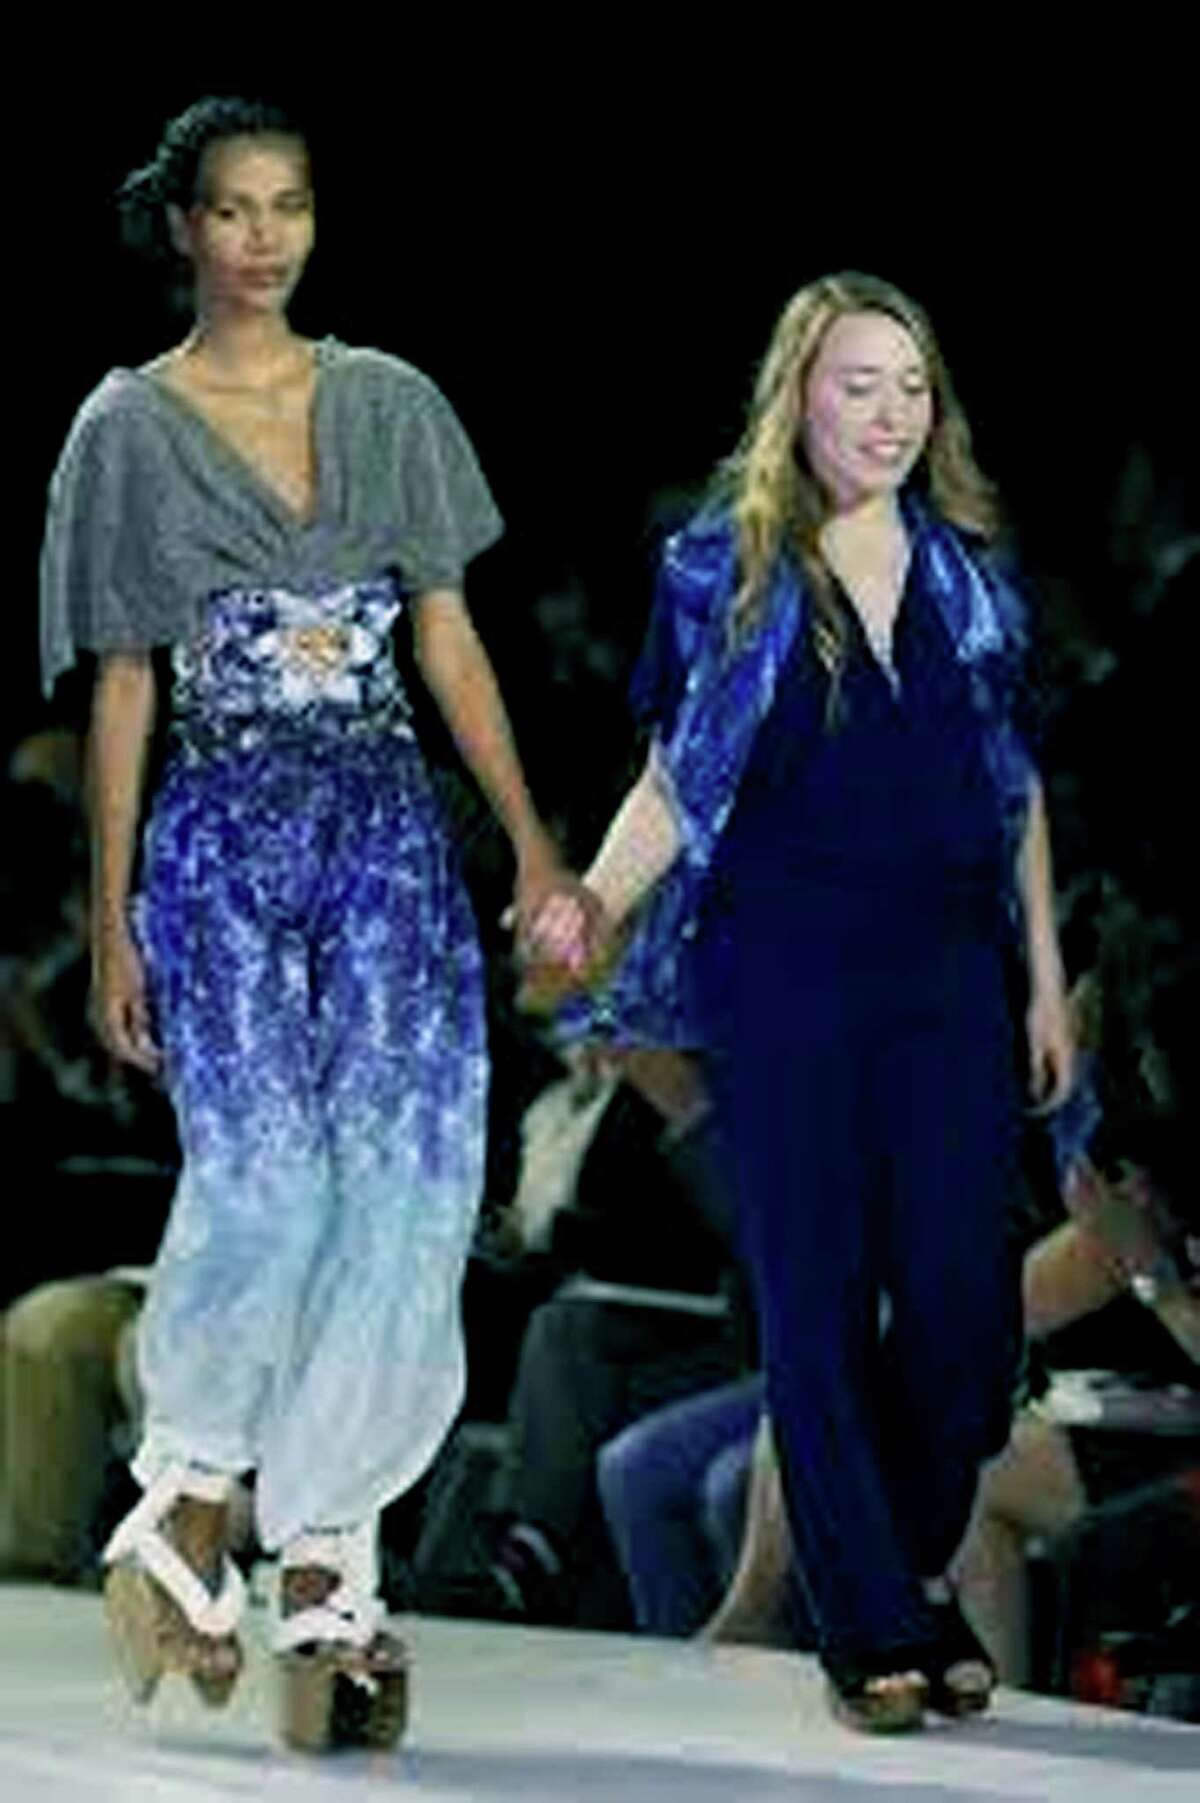 Hannah Ross, right, a graduate of Shepaug Valley High School, is shown with a model during her recent fashion show of her creations in Manhattan. May 2013